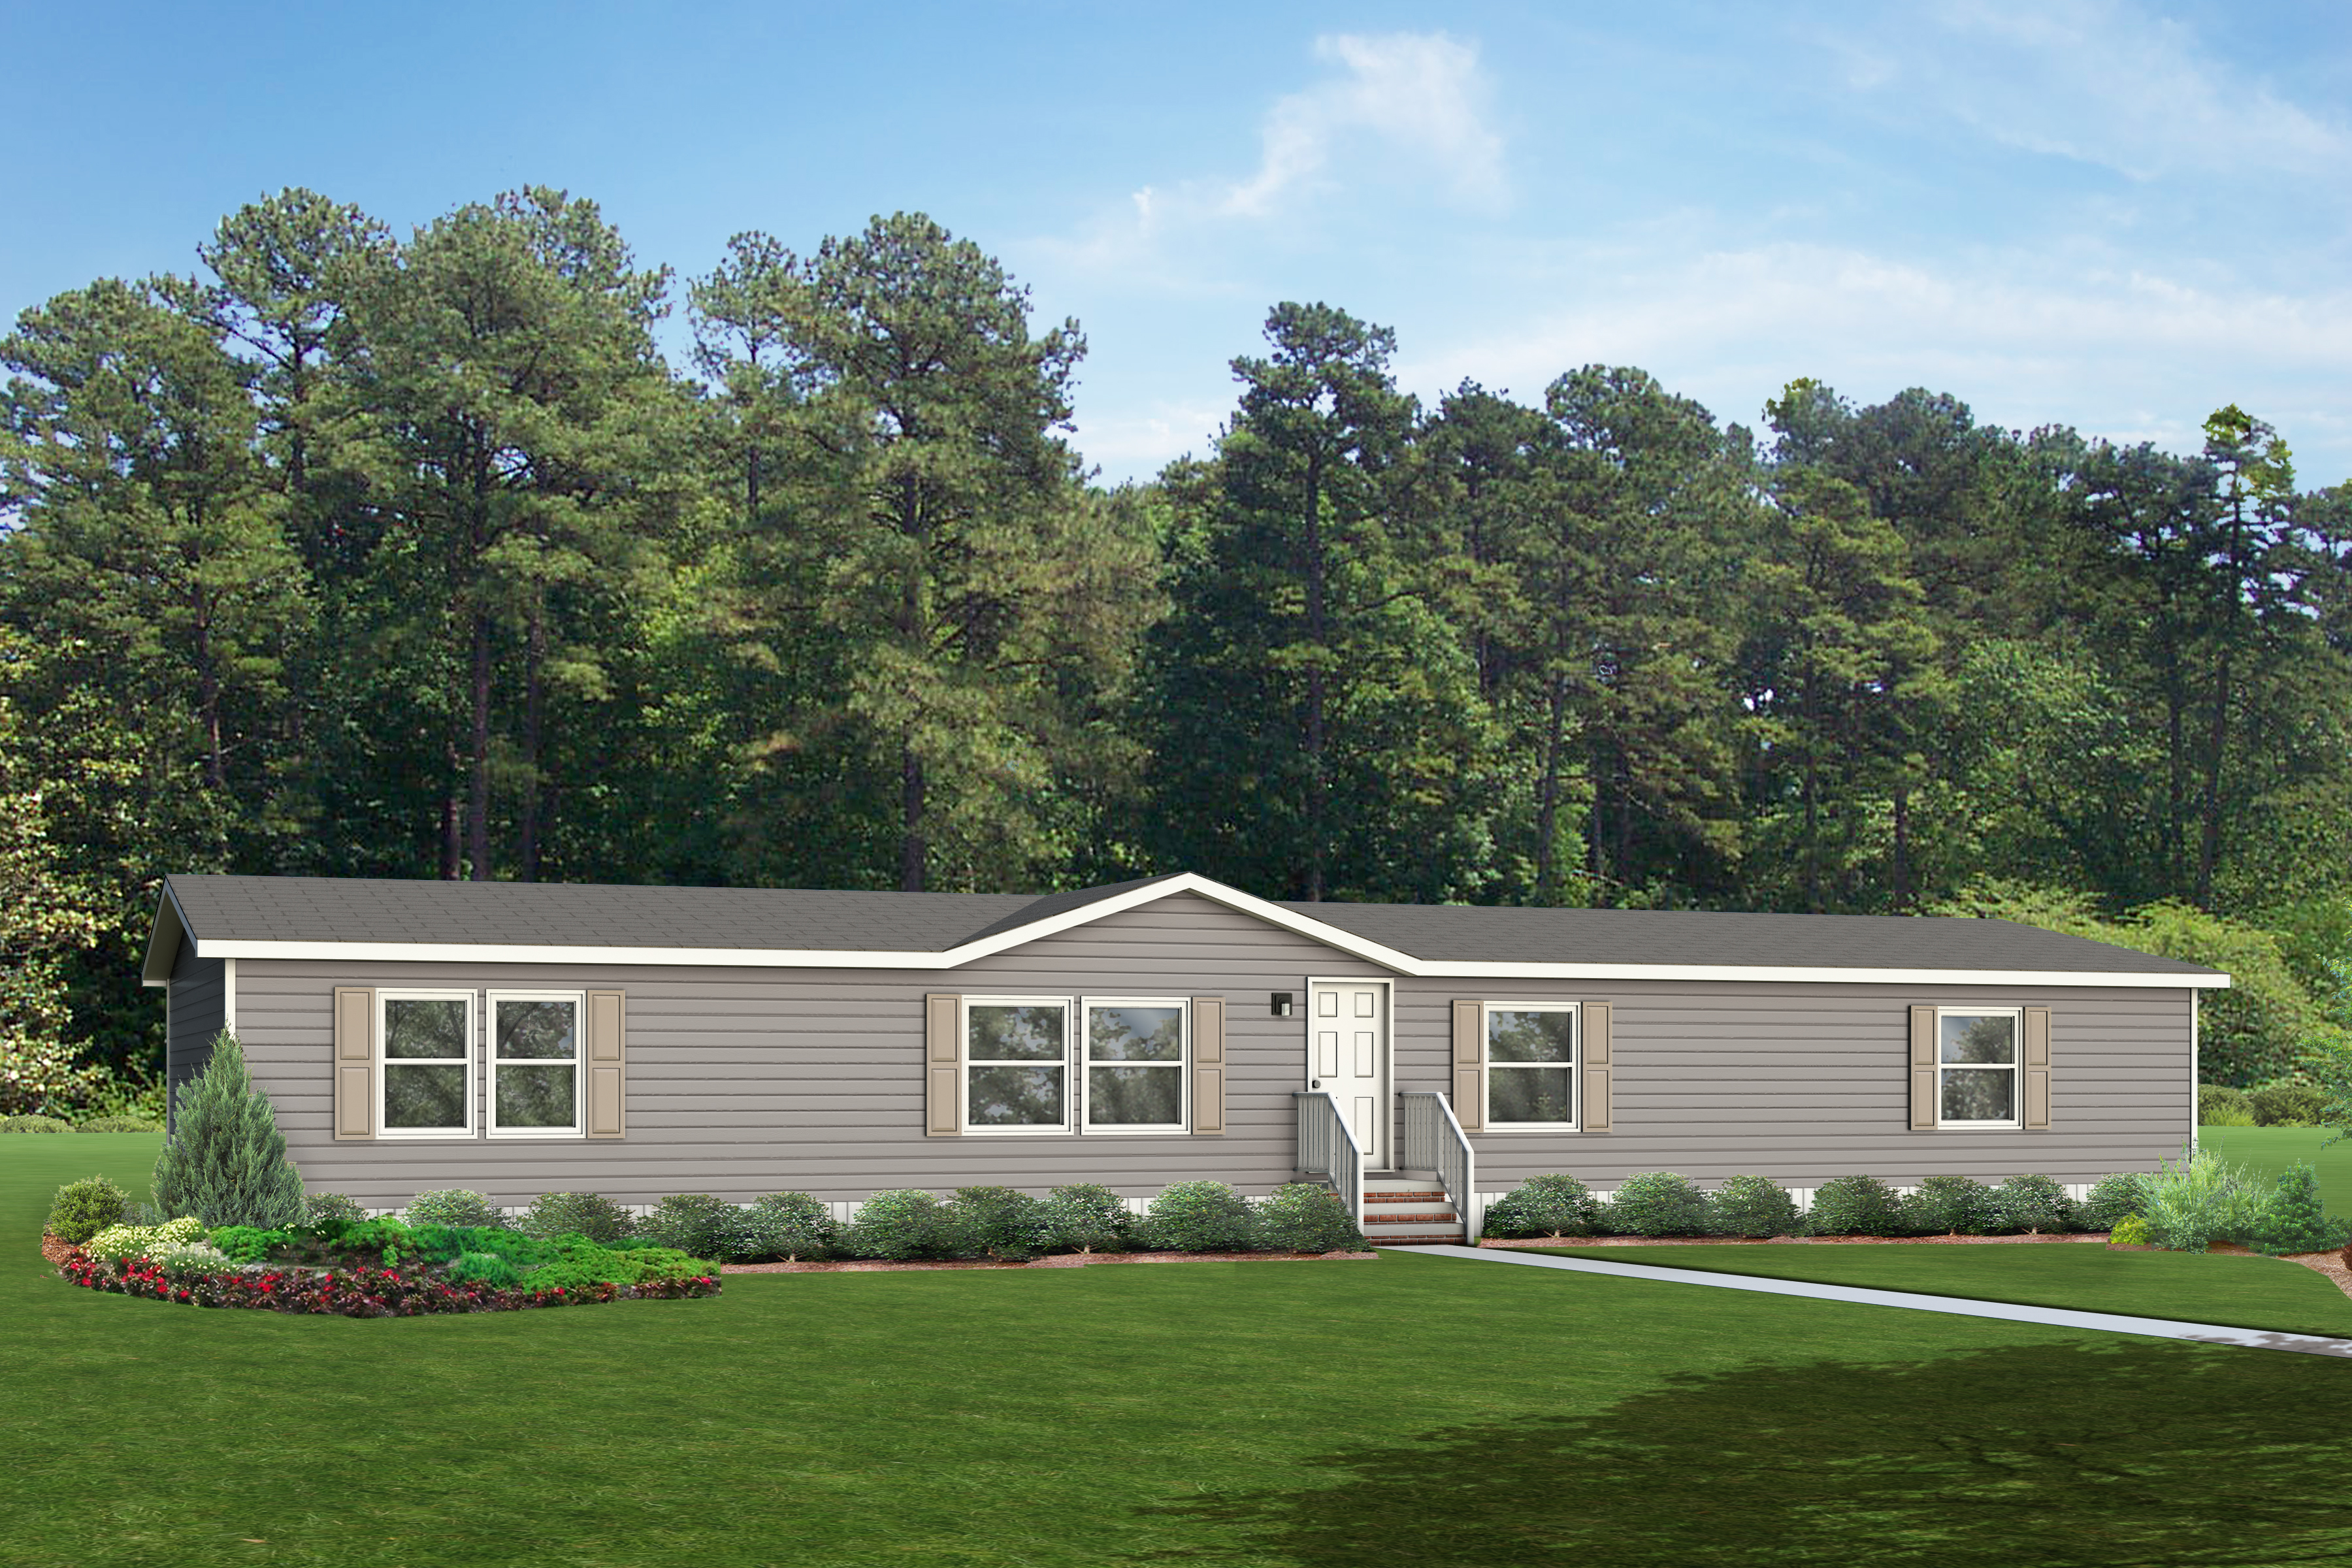 pinewoodhomes | DOUBLE WIDES on mobile homes in wv, apartments for rent in wv, properties 4 sale wv, luxury homes in wv, manufactured homes in wv, rural homes in wv,